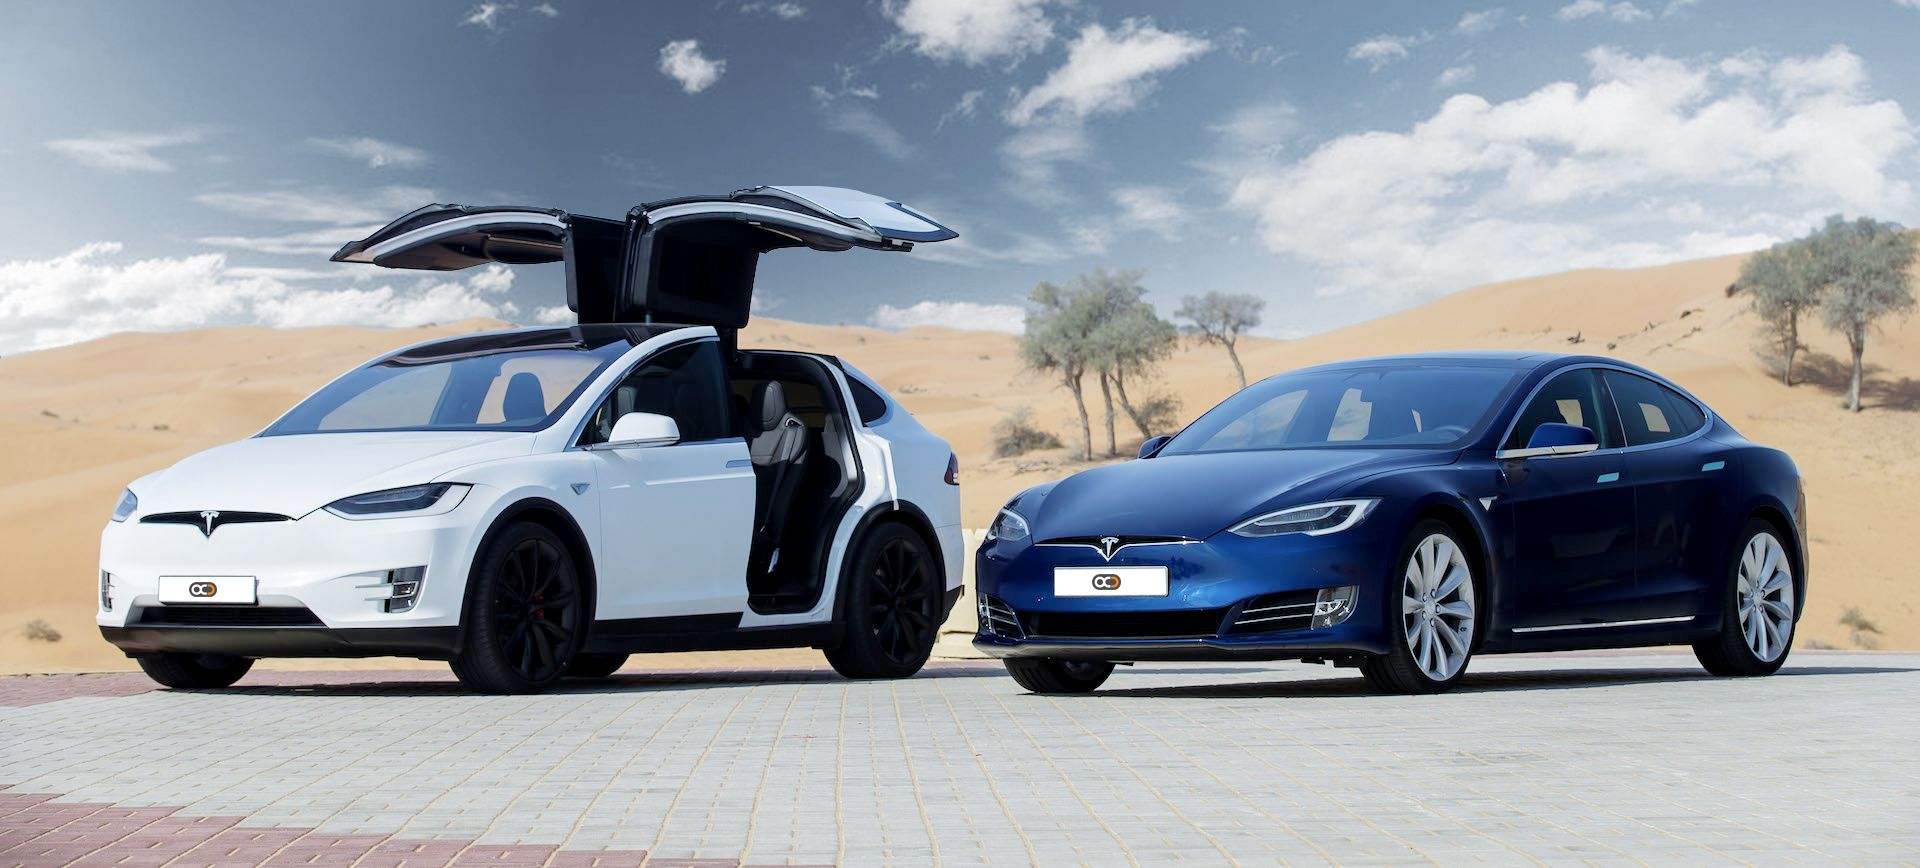 Drive The Tesla Model X For Aed 2000 Day Or The Tesla Model S